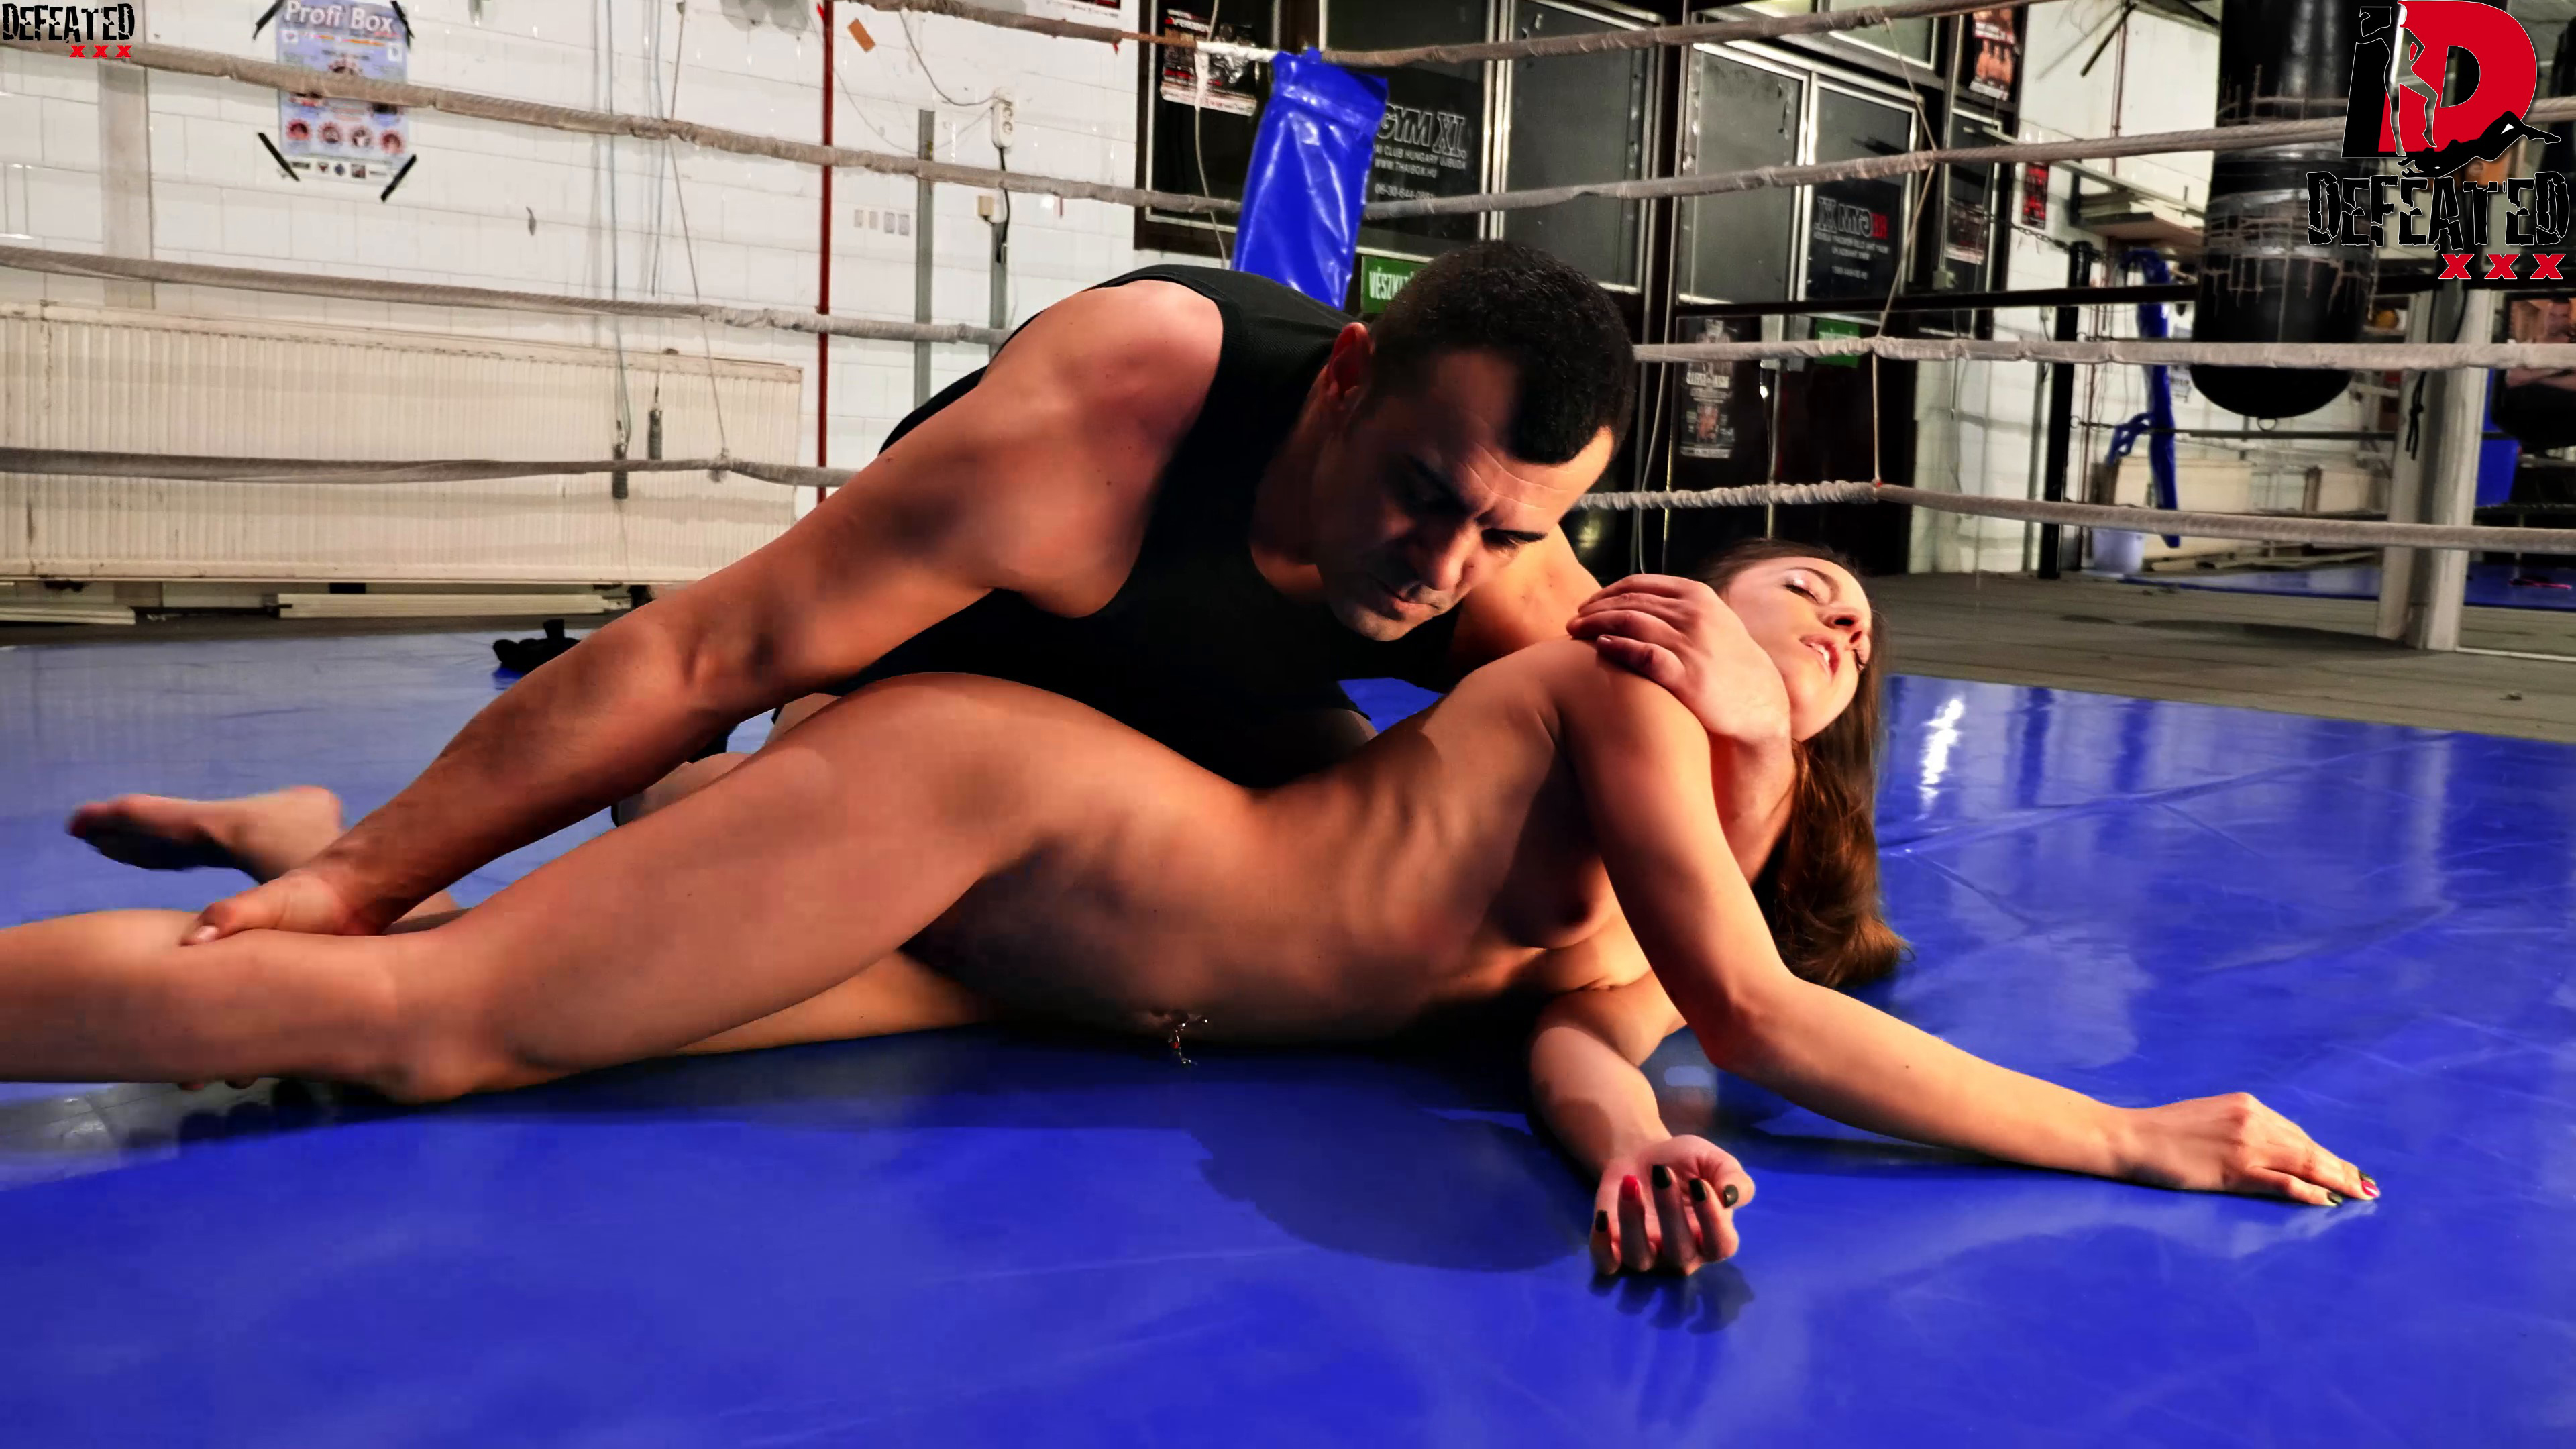 DEFEATED-MXD66---Amirah-Antonio-(61)